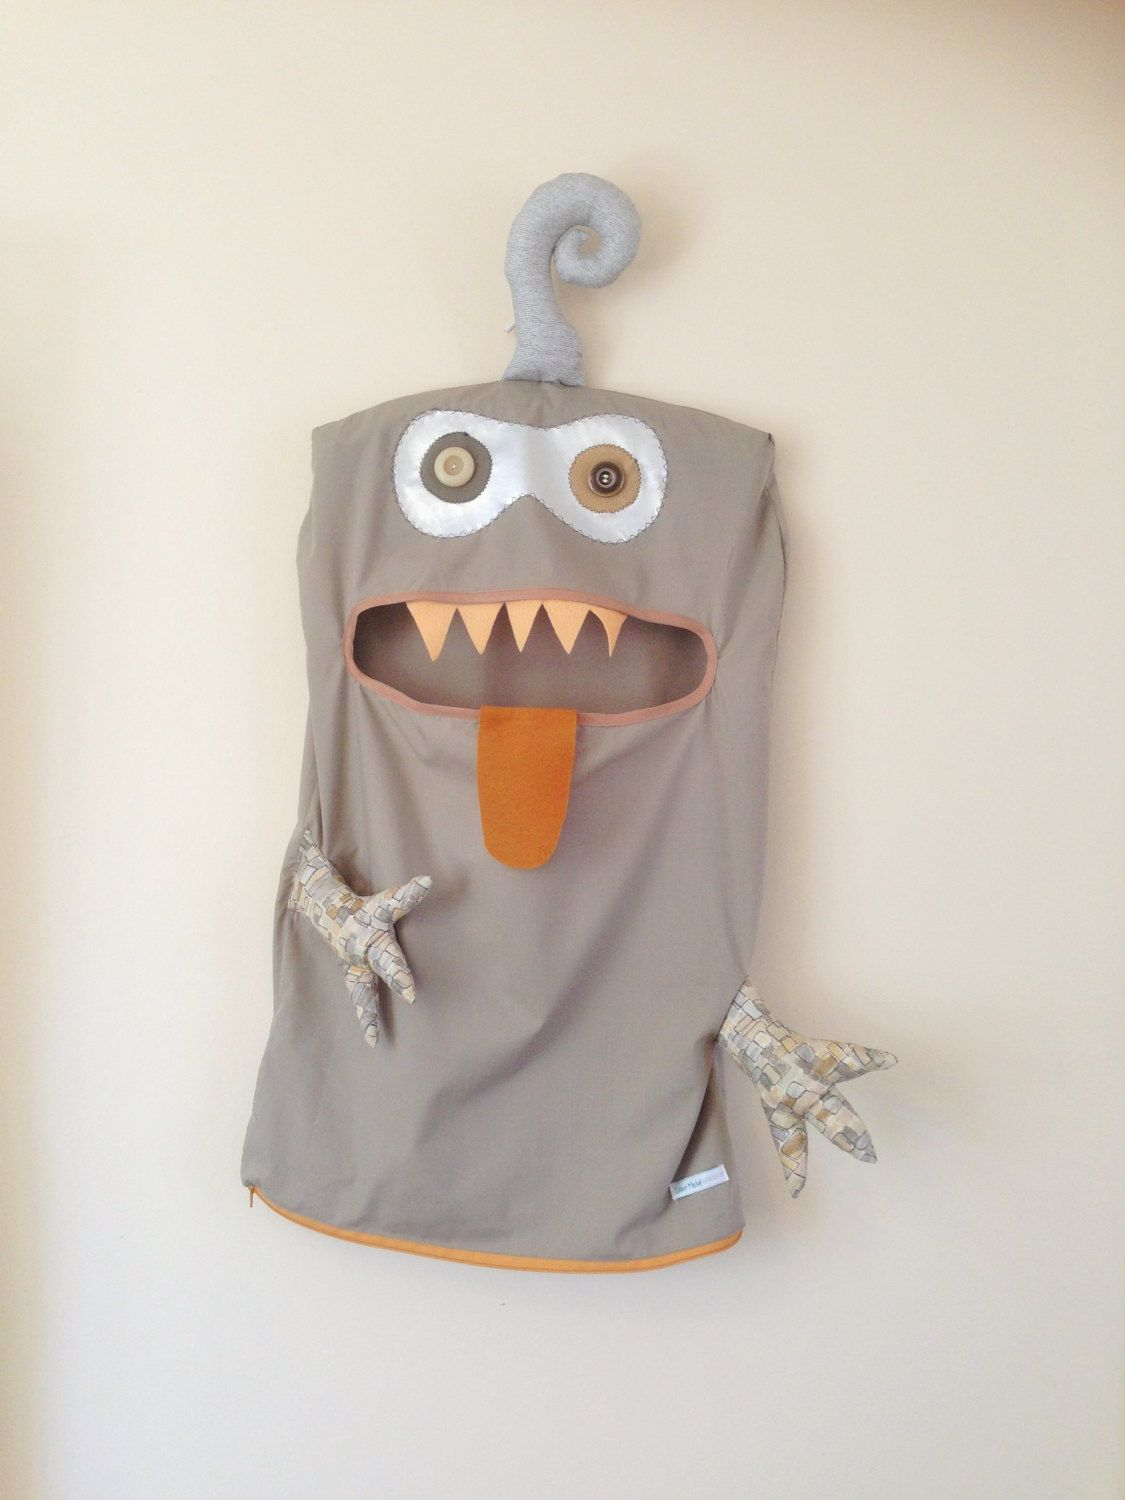 Monster Laundry/Toy Bag, Splendid Mocha, Grey & Brown 2 Eyed Friendly Monster, I'm a Pet, Bag, dress Up, Softie, gift, boys, girls, by ColourMeldDesigns on Etsy